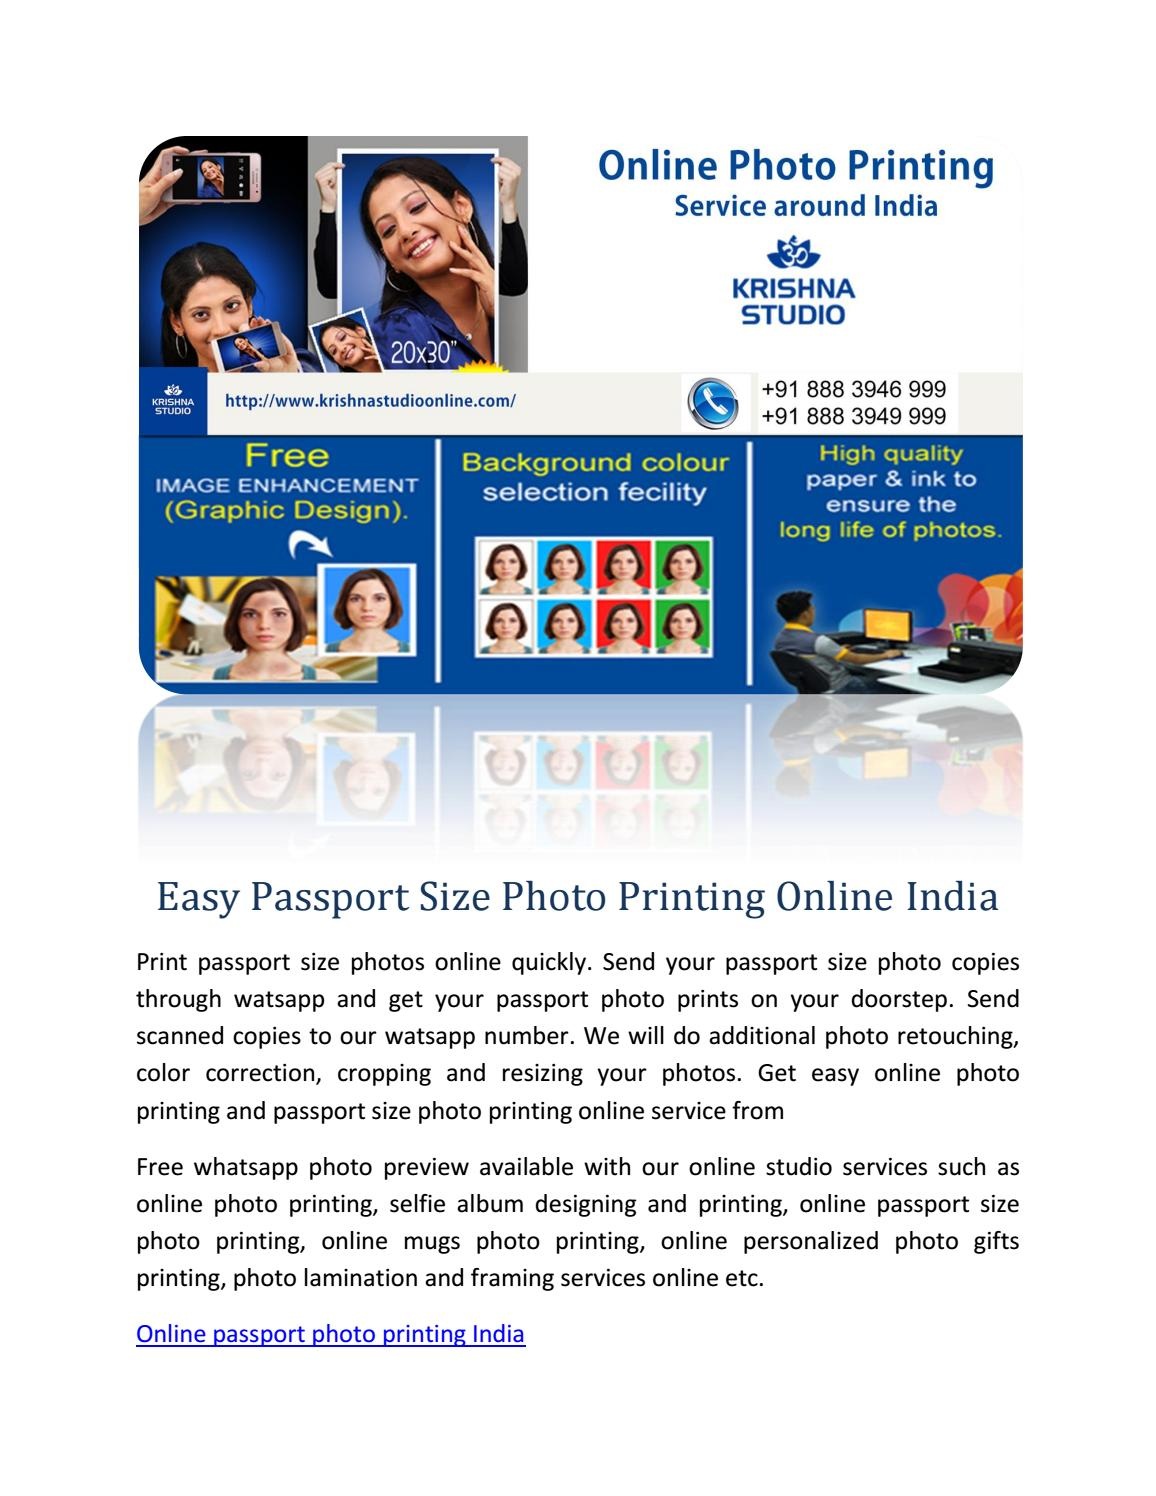 Easy Passport Size Photo Printing Online India by